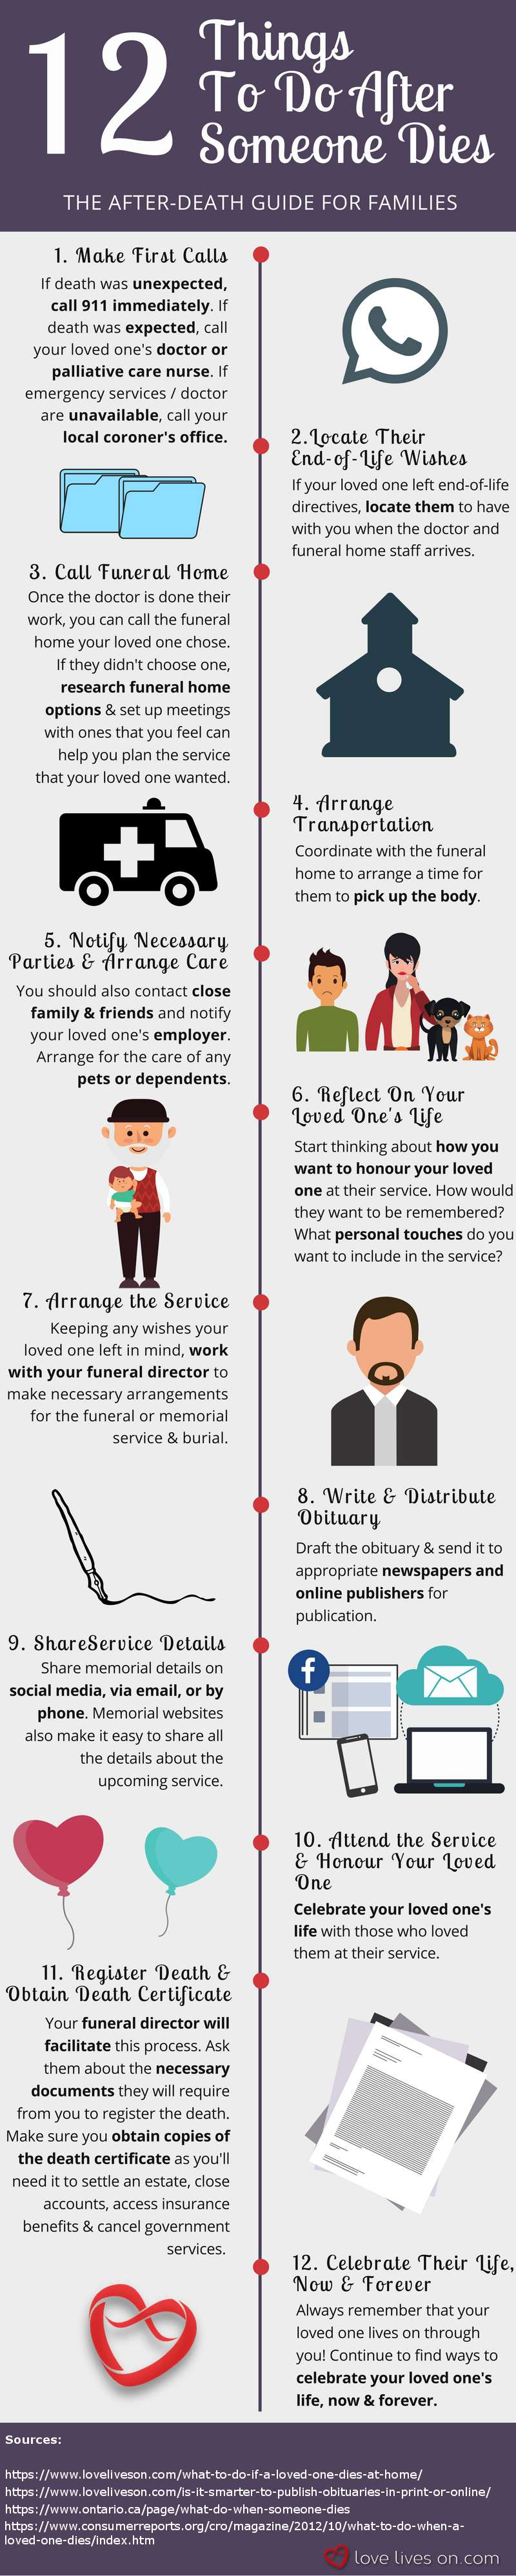 What to Do When Someone Dies at Home Infographic